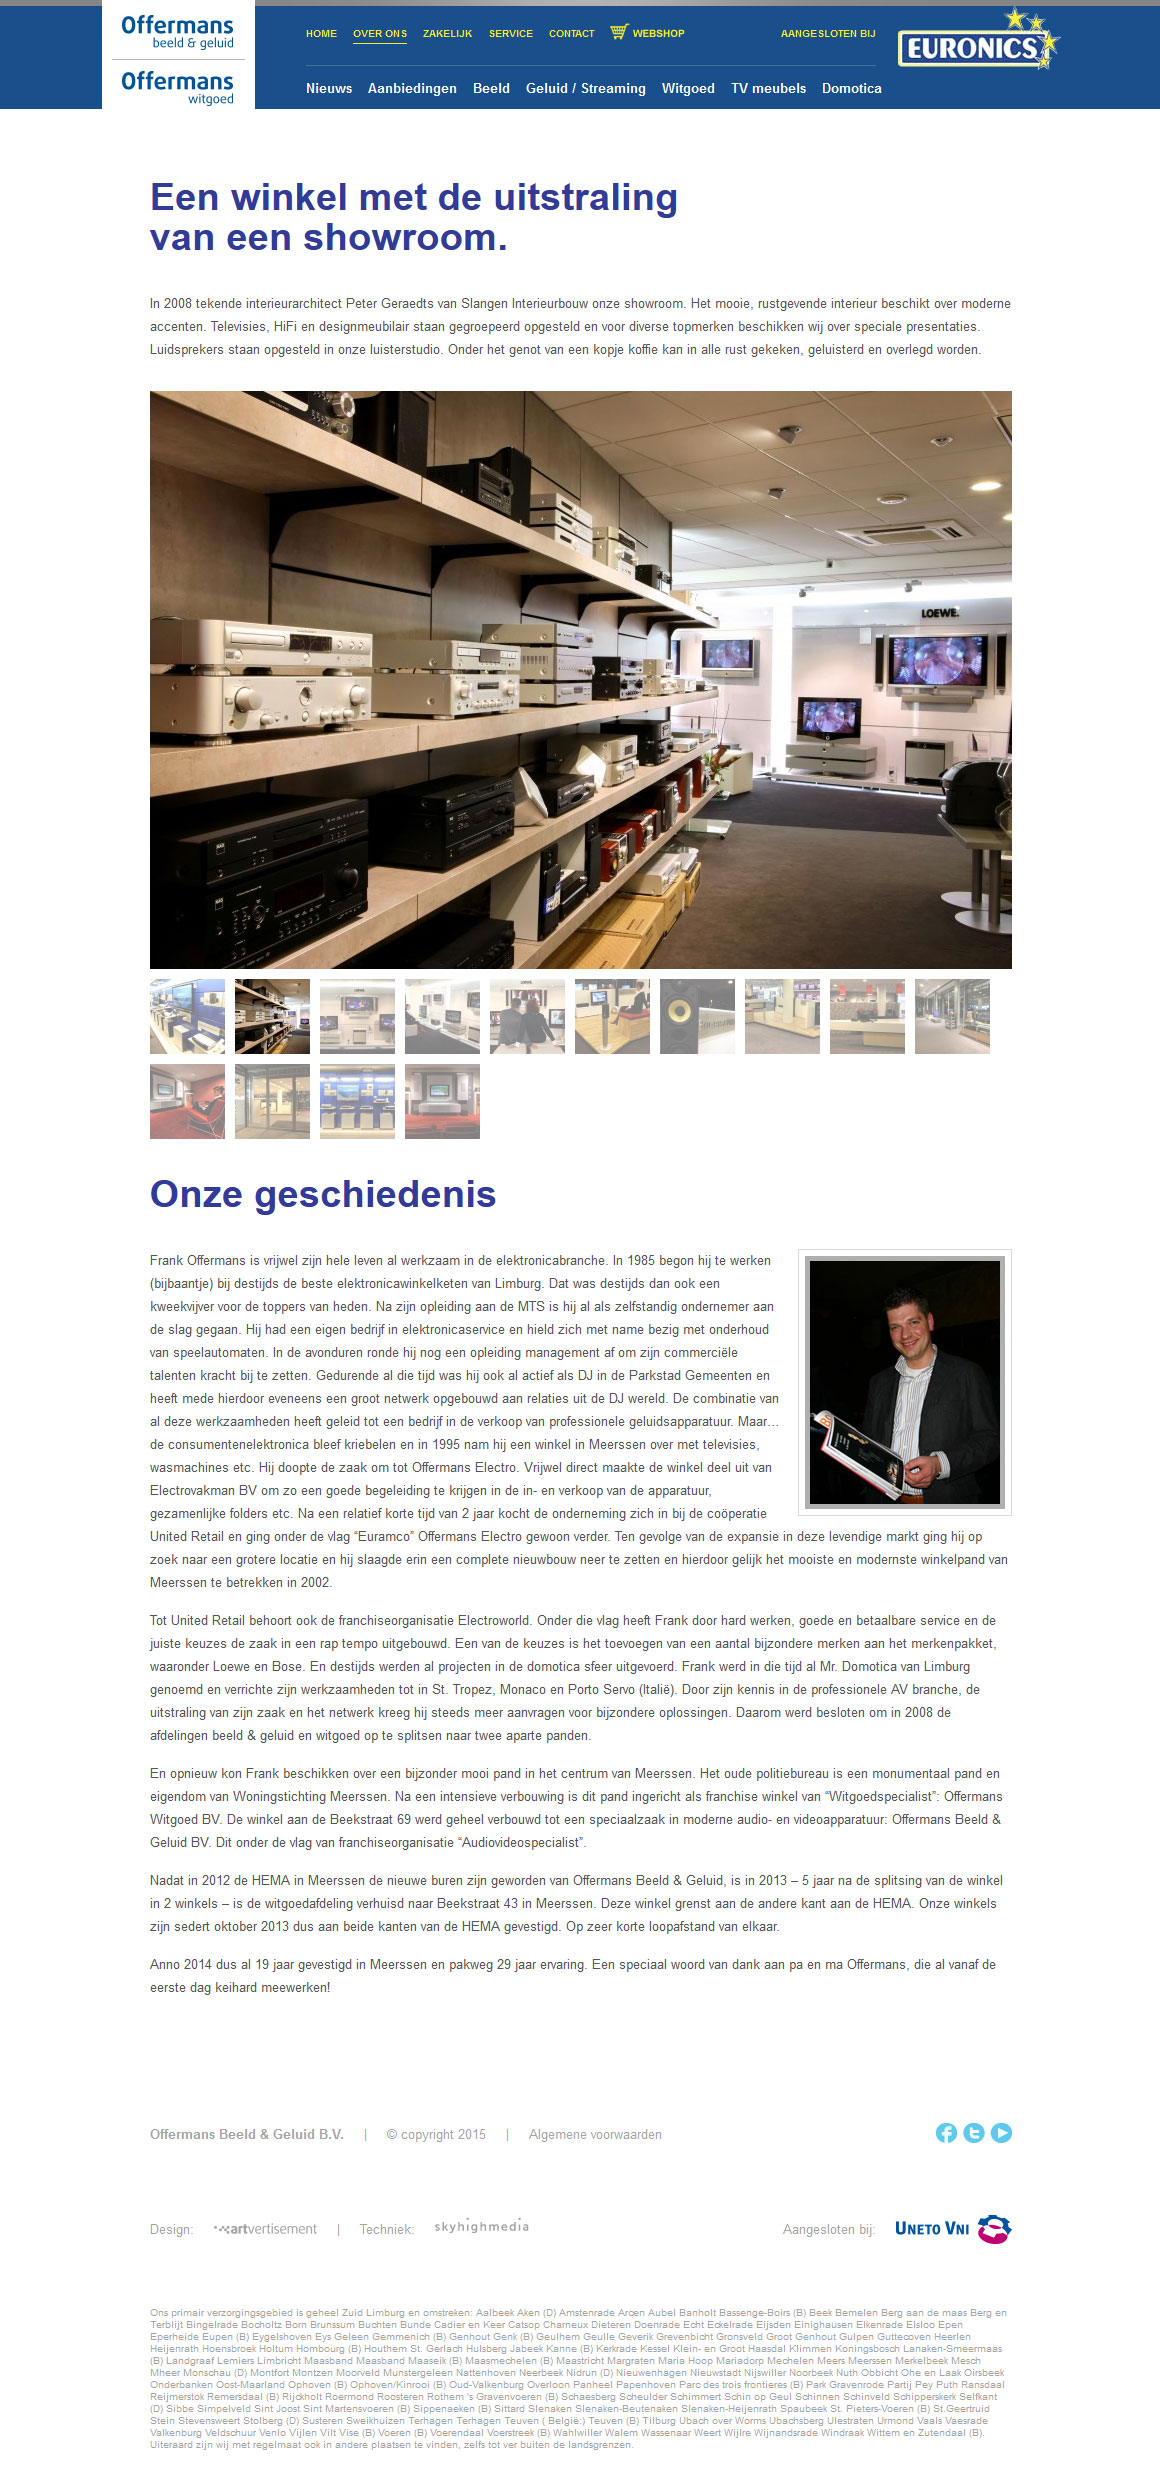 offermans_website2